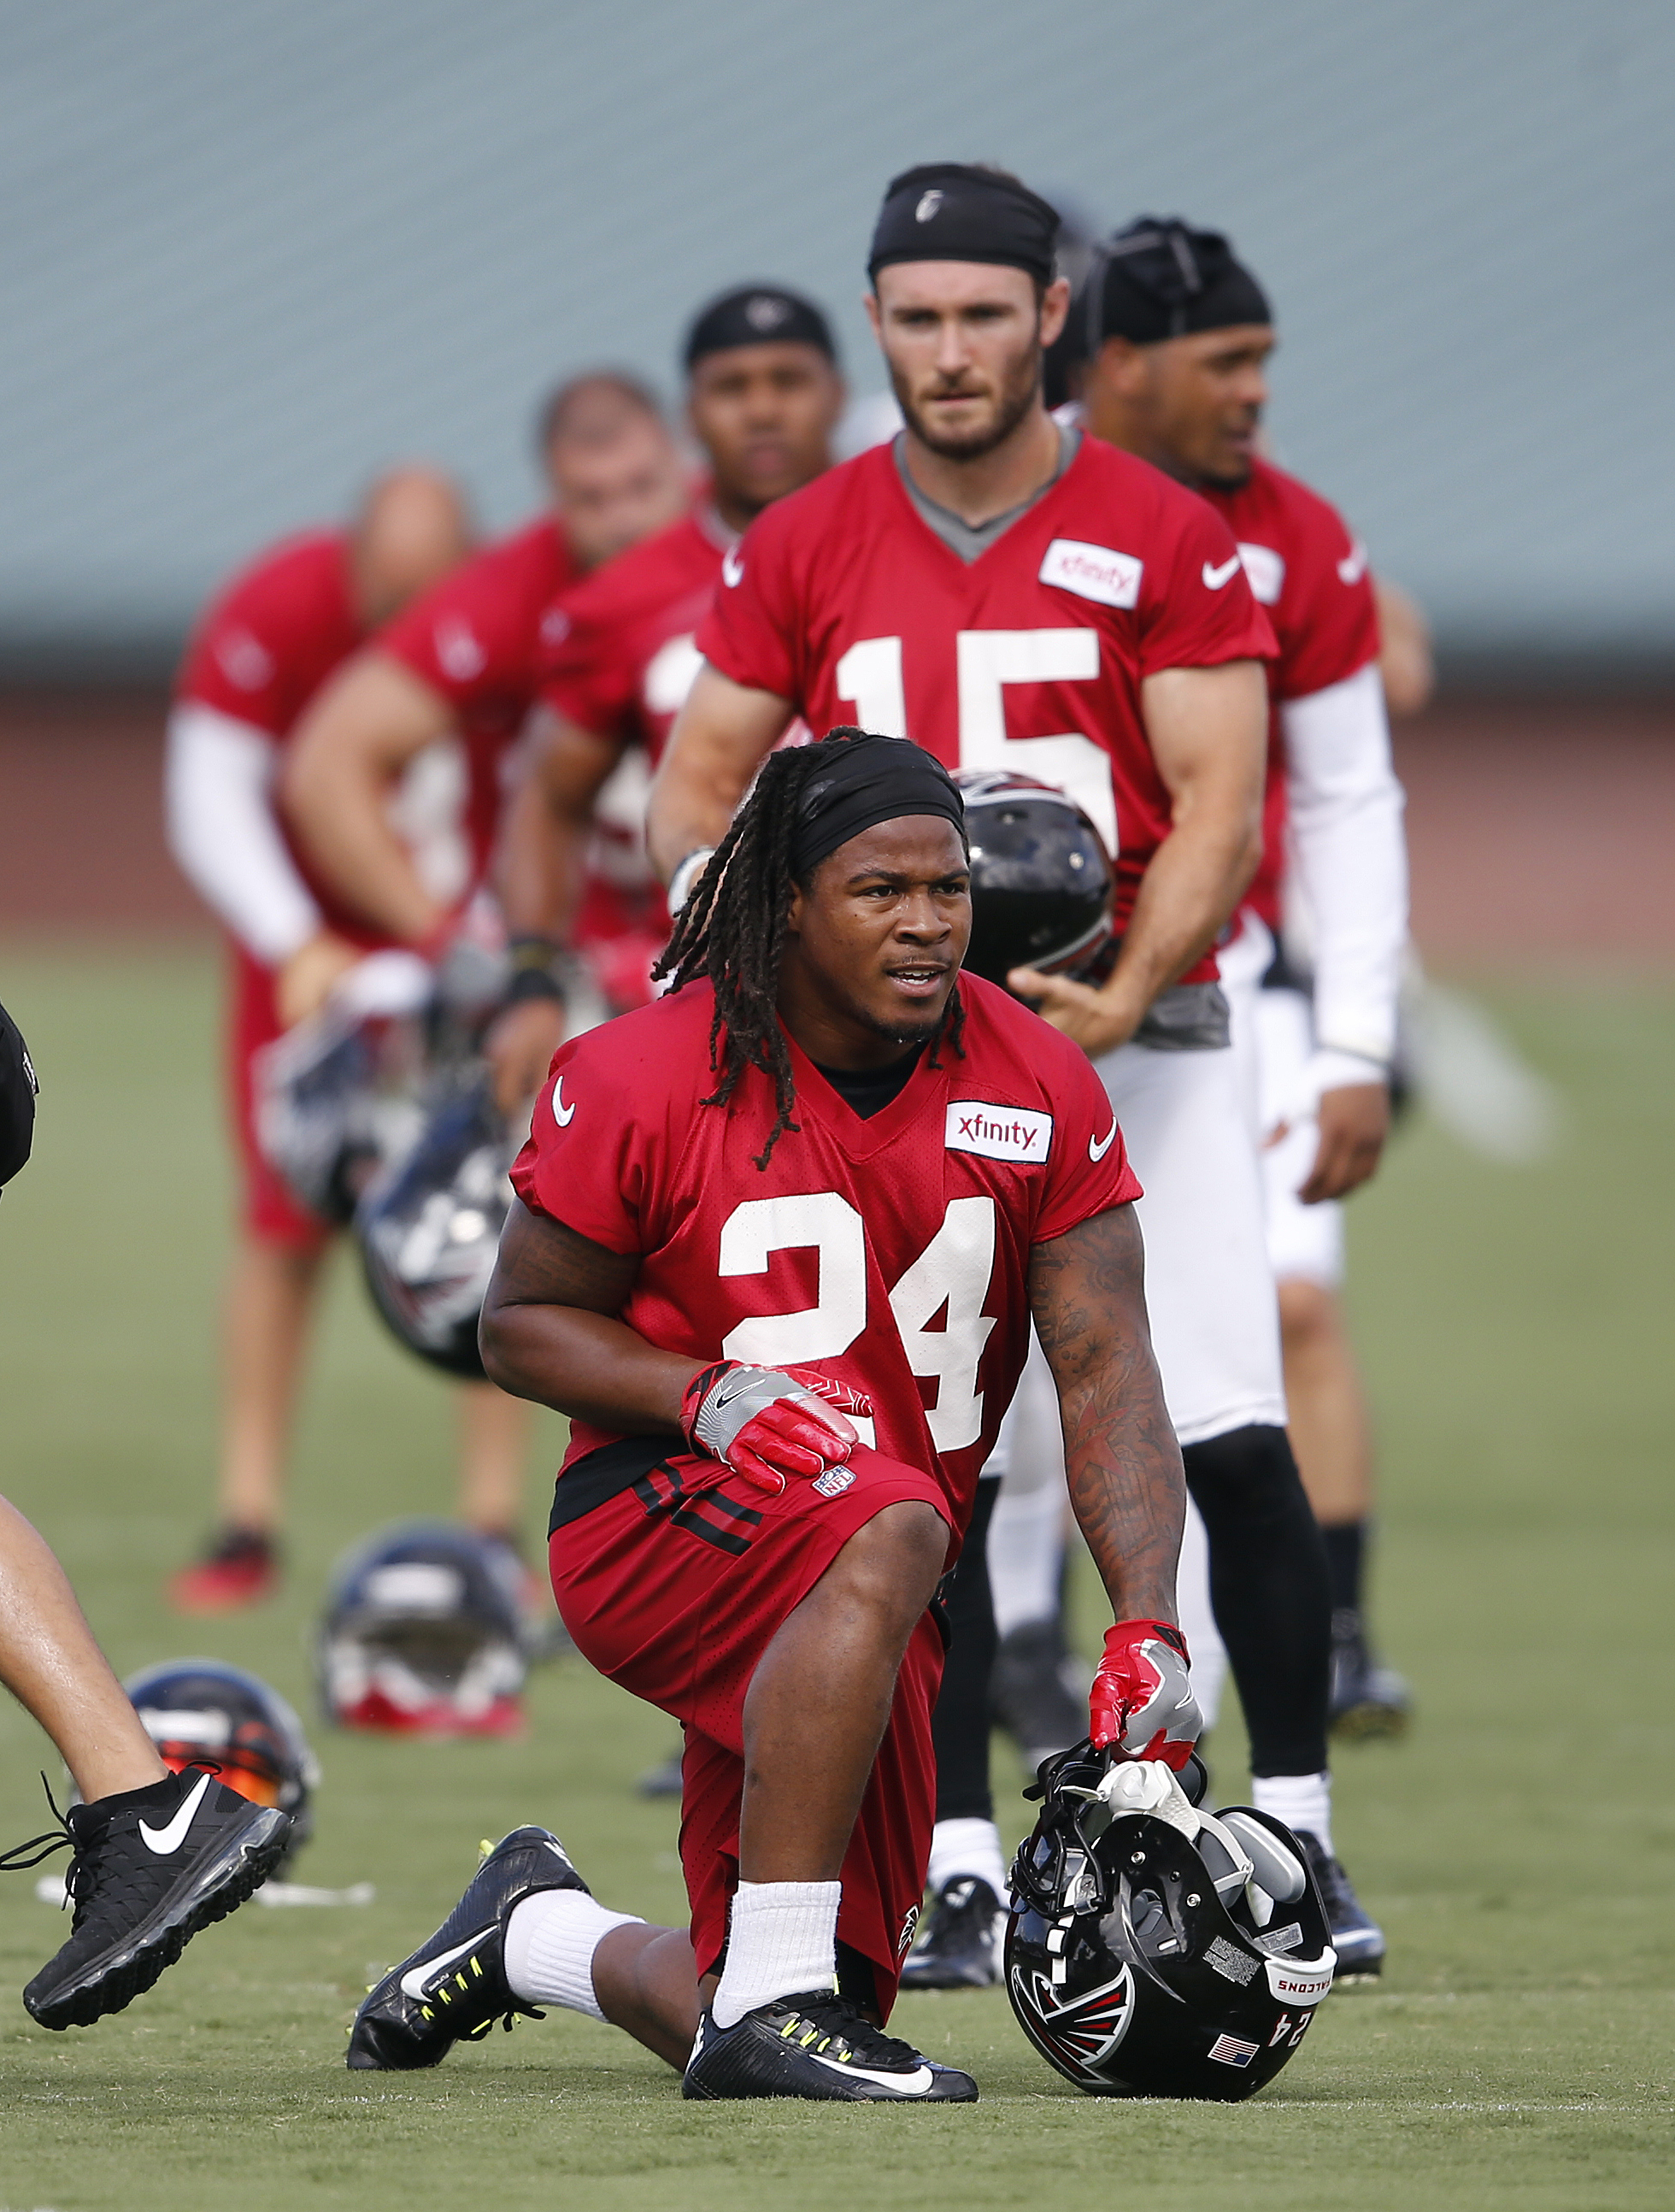 Atlanta Falcons running back Devonta Freeman (24) stretches during during an NFL football practice Friday, July 29, 2016, in Flowery Branch, Ga. (AP Photo/John Bazemore)